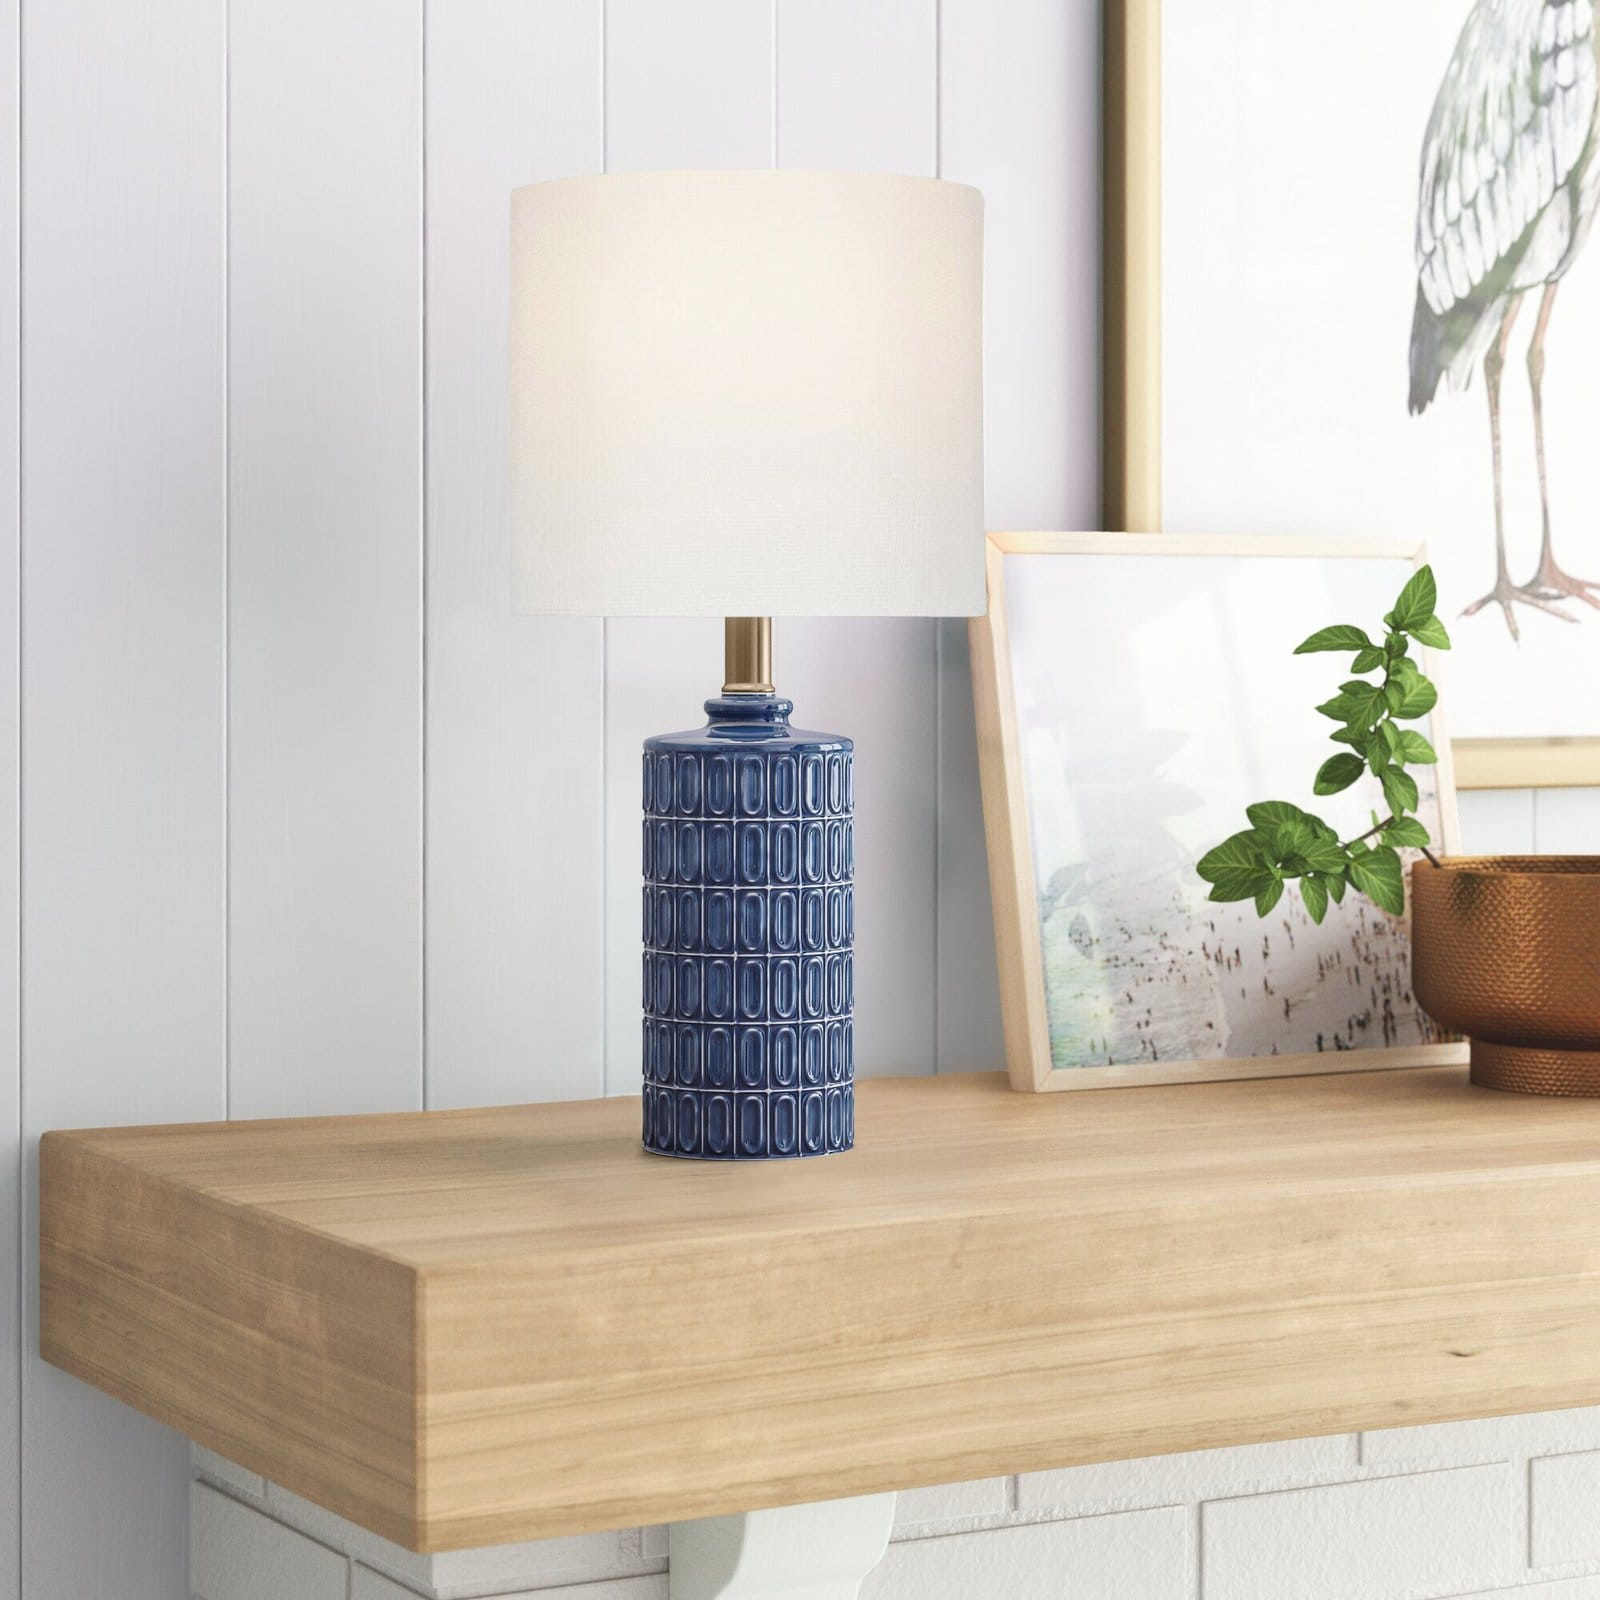 Add a Touch of Coastal Charm With A Small Ceramic Table Lamp